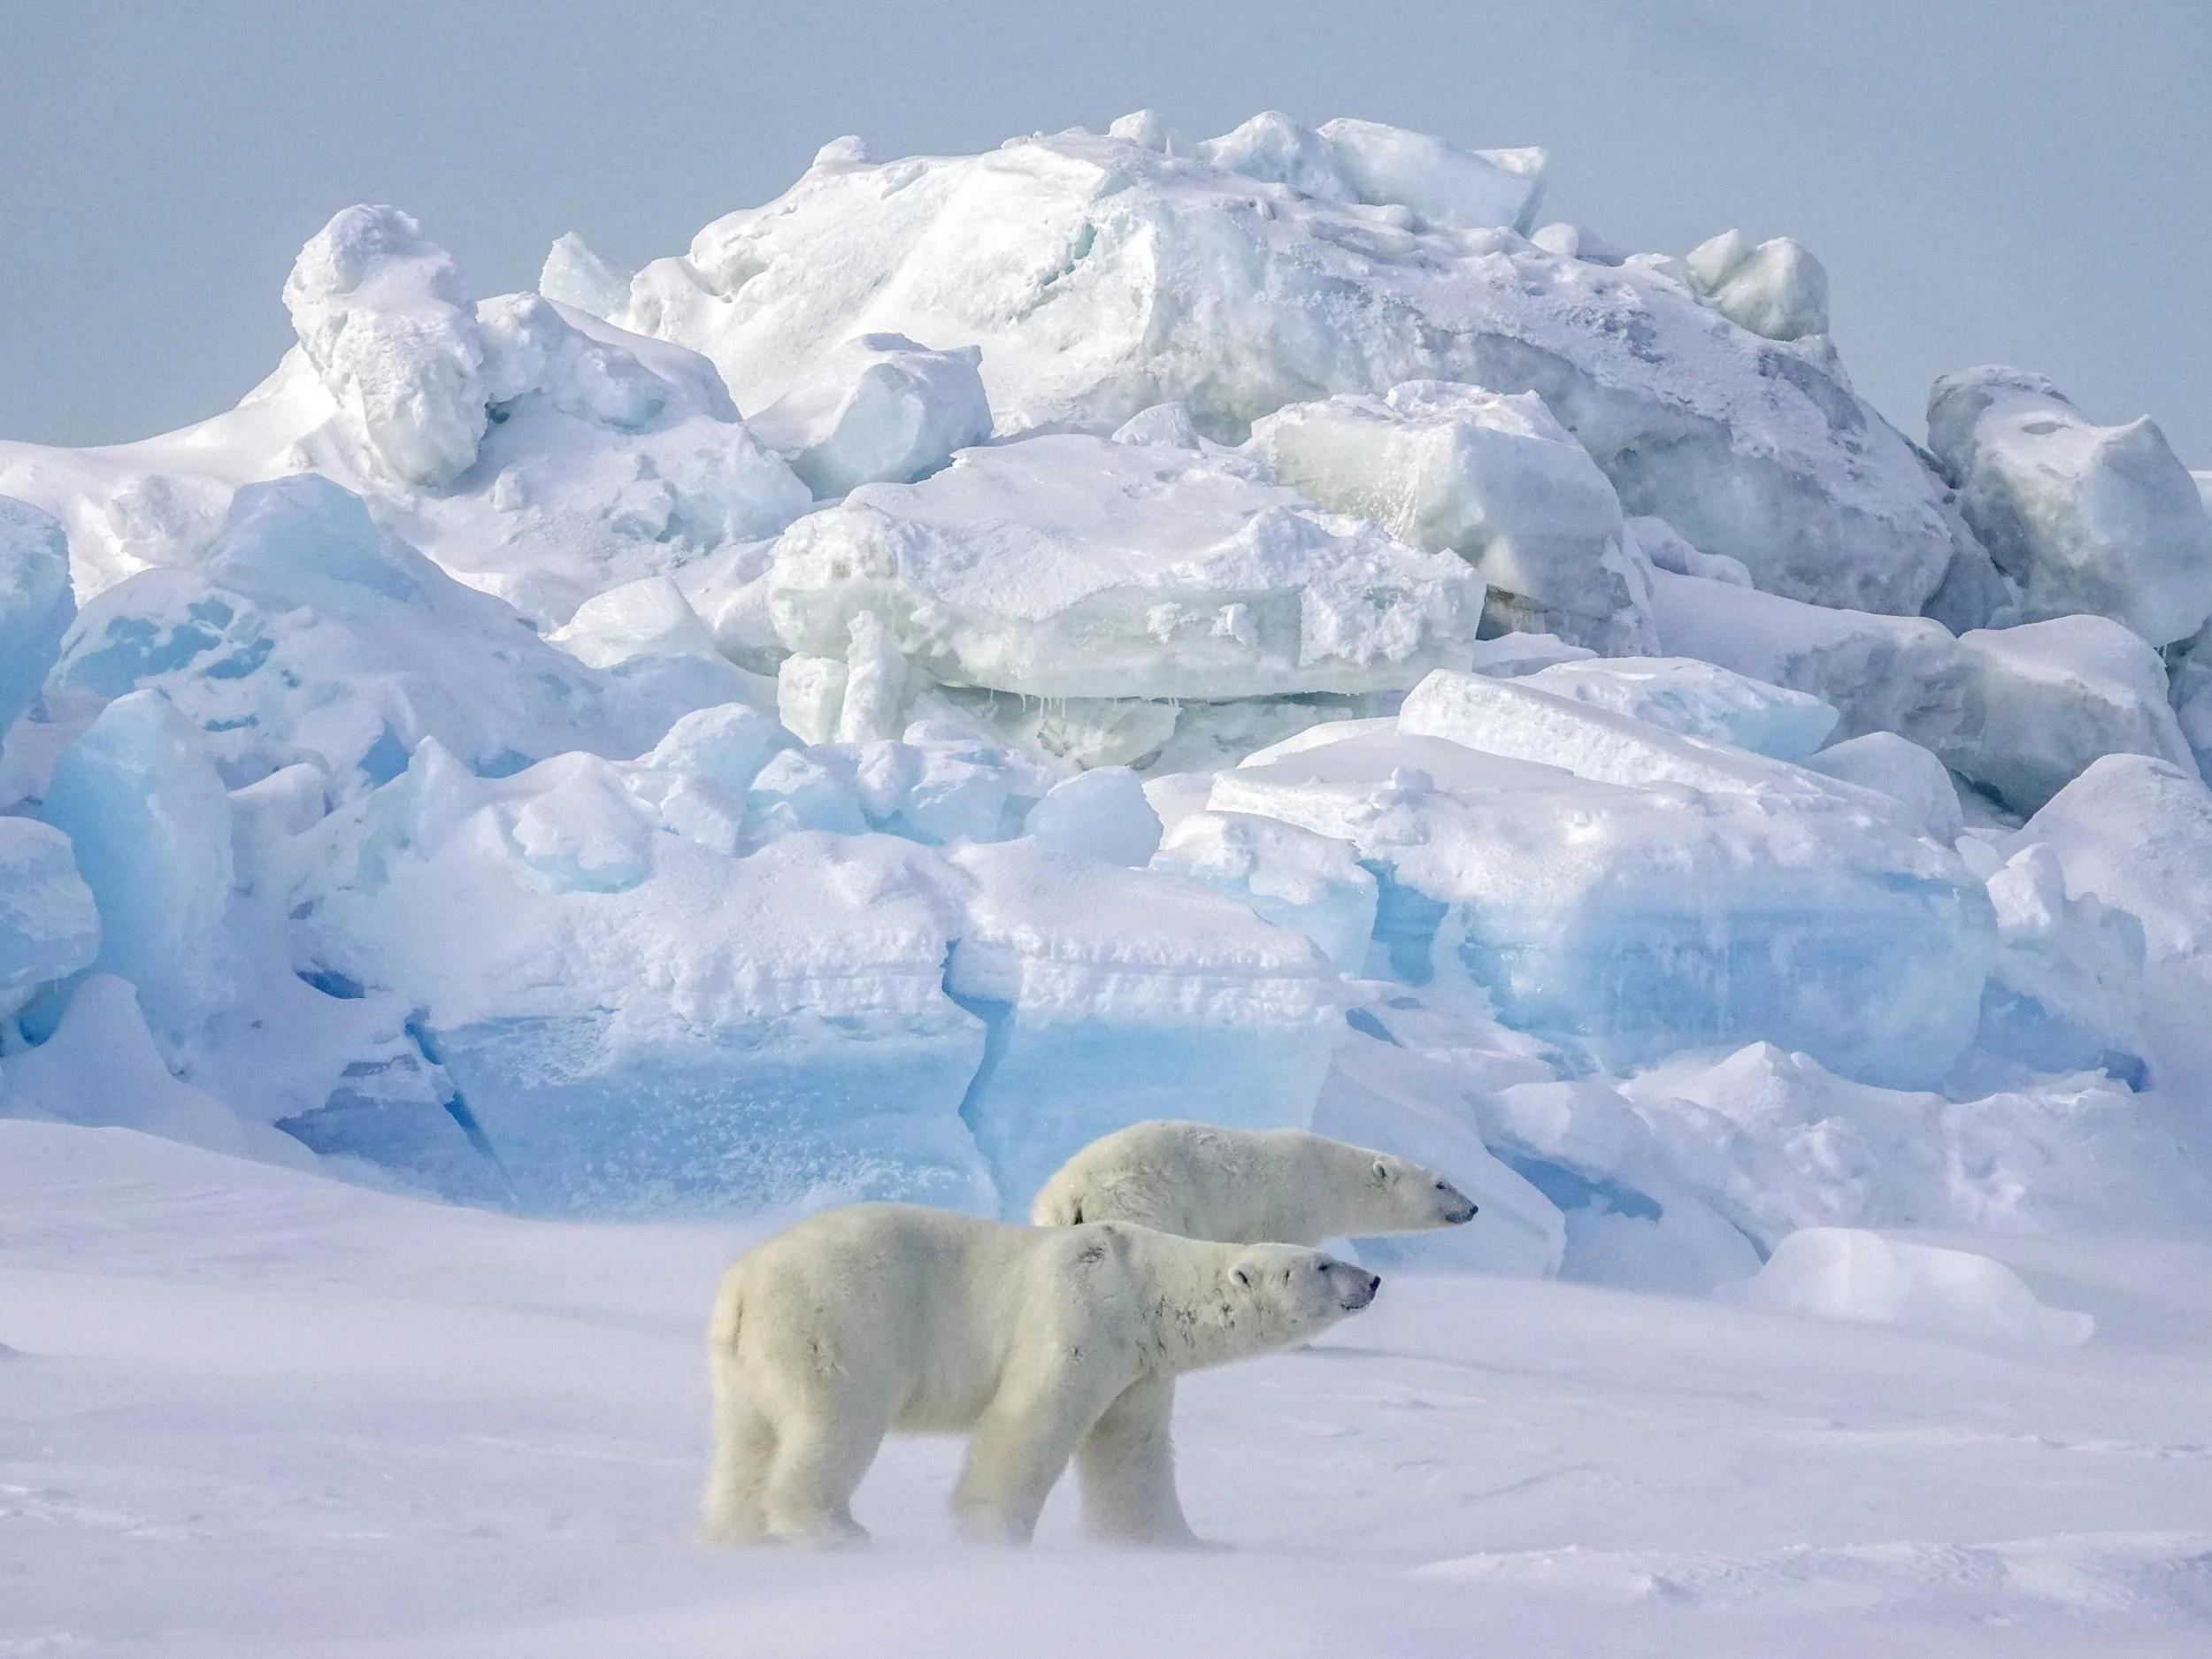 Man Shot Polar Bear And Left Its Body Outside His Home